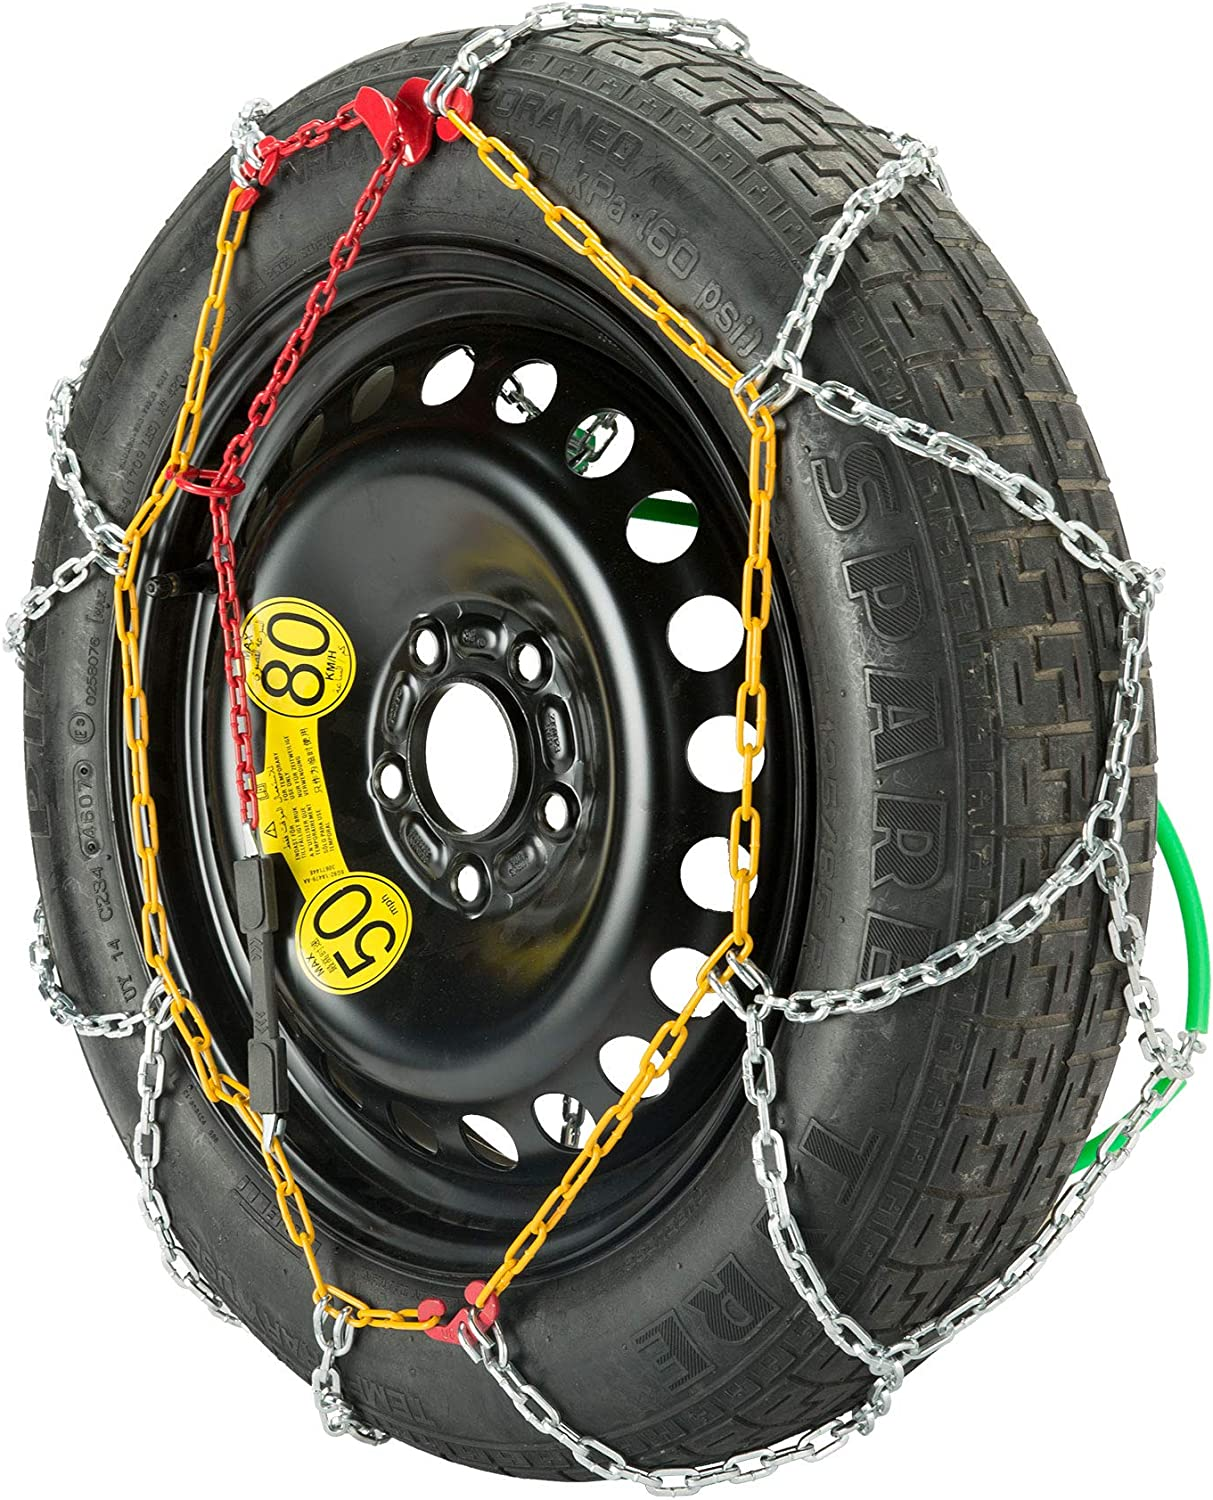 KN90 195-235mm Sfeomi 2 Sets 12mm Snow Tire Chains Emergency Mud Anti-Skid Steel Chain Snow Tire Security Chains for Passenger Vehicle Suitable for 195-235mm